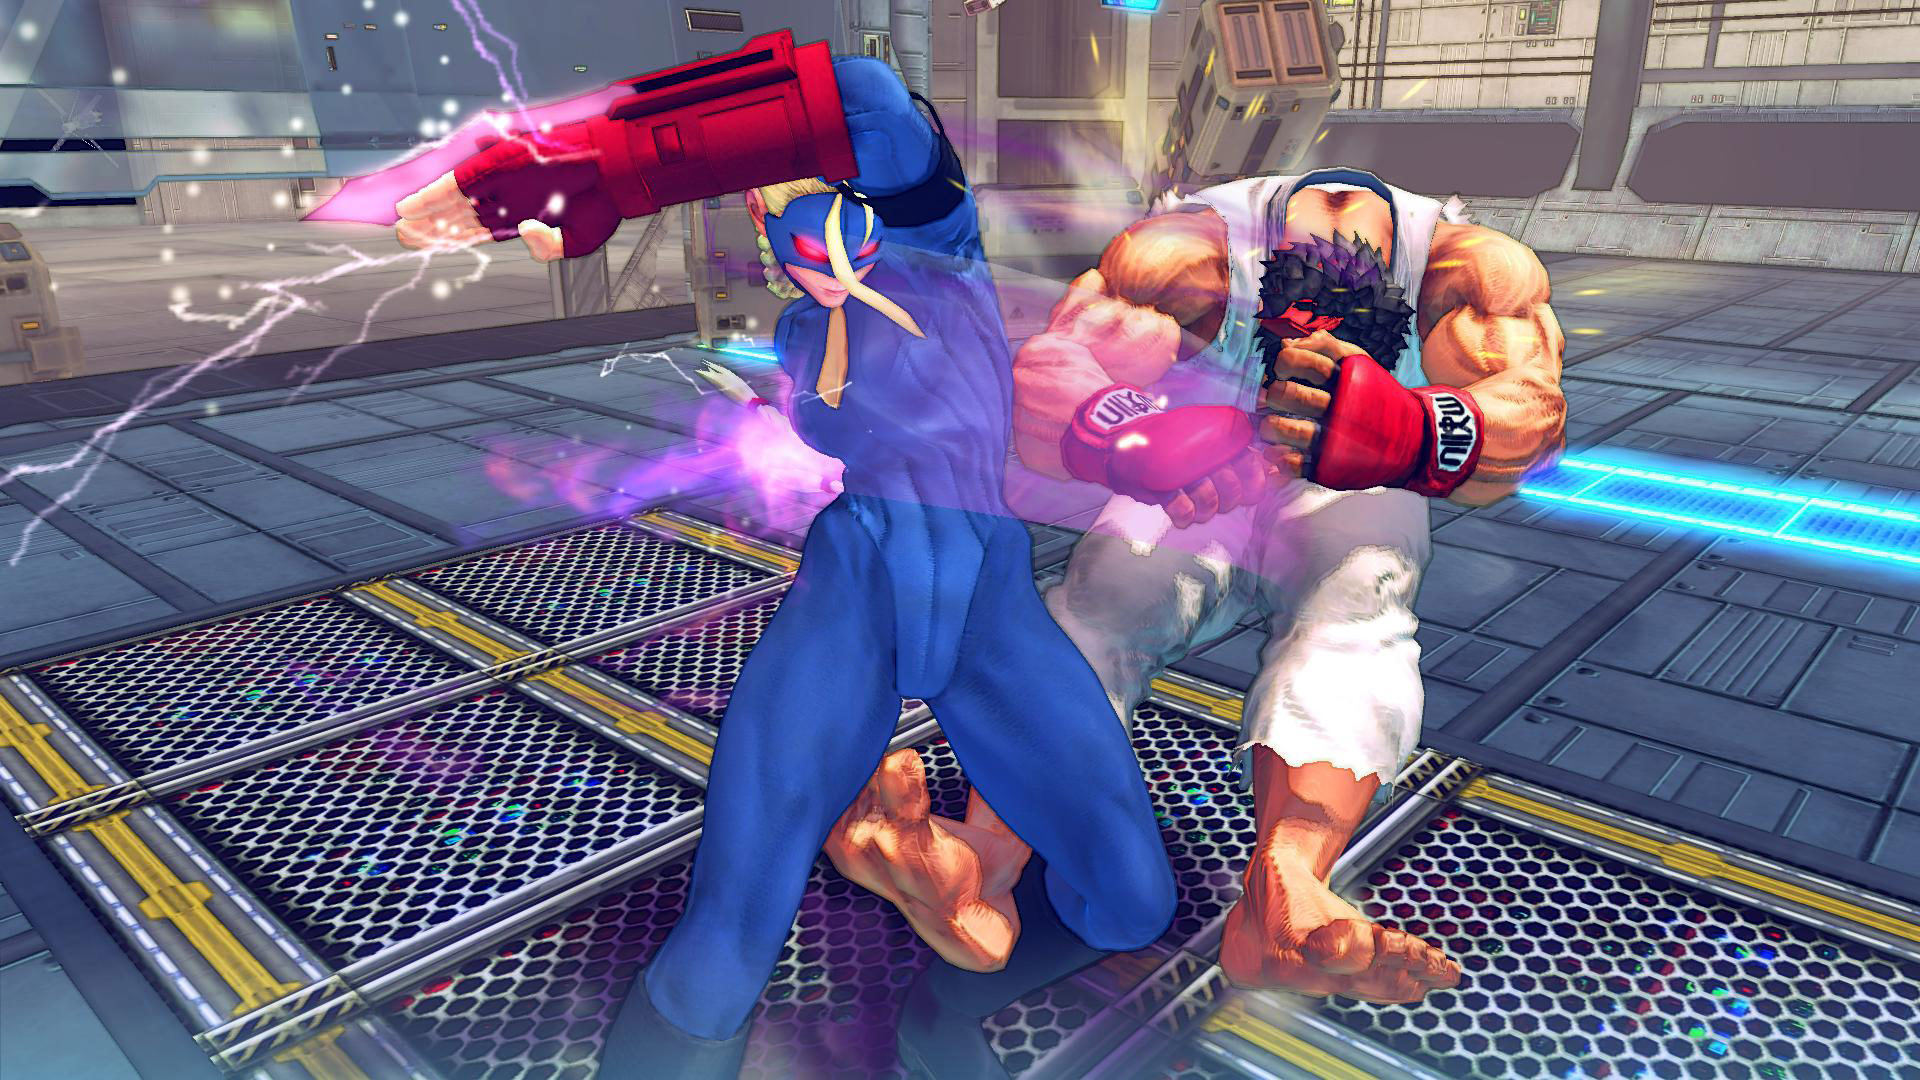 Decapre artwork and screen shots for Ultra Street Fighter 4 image #12